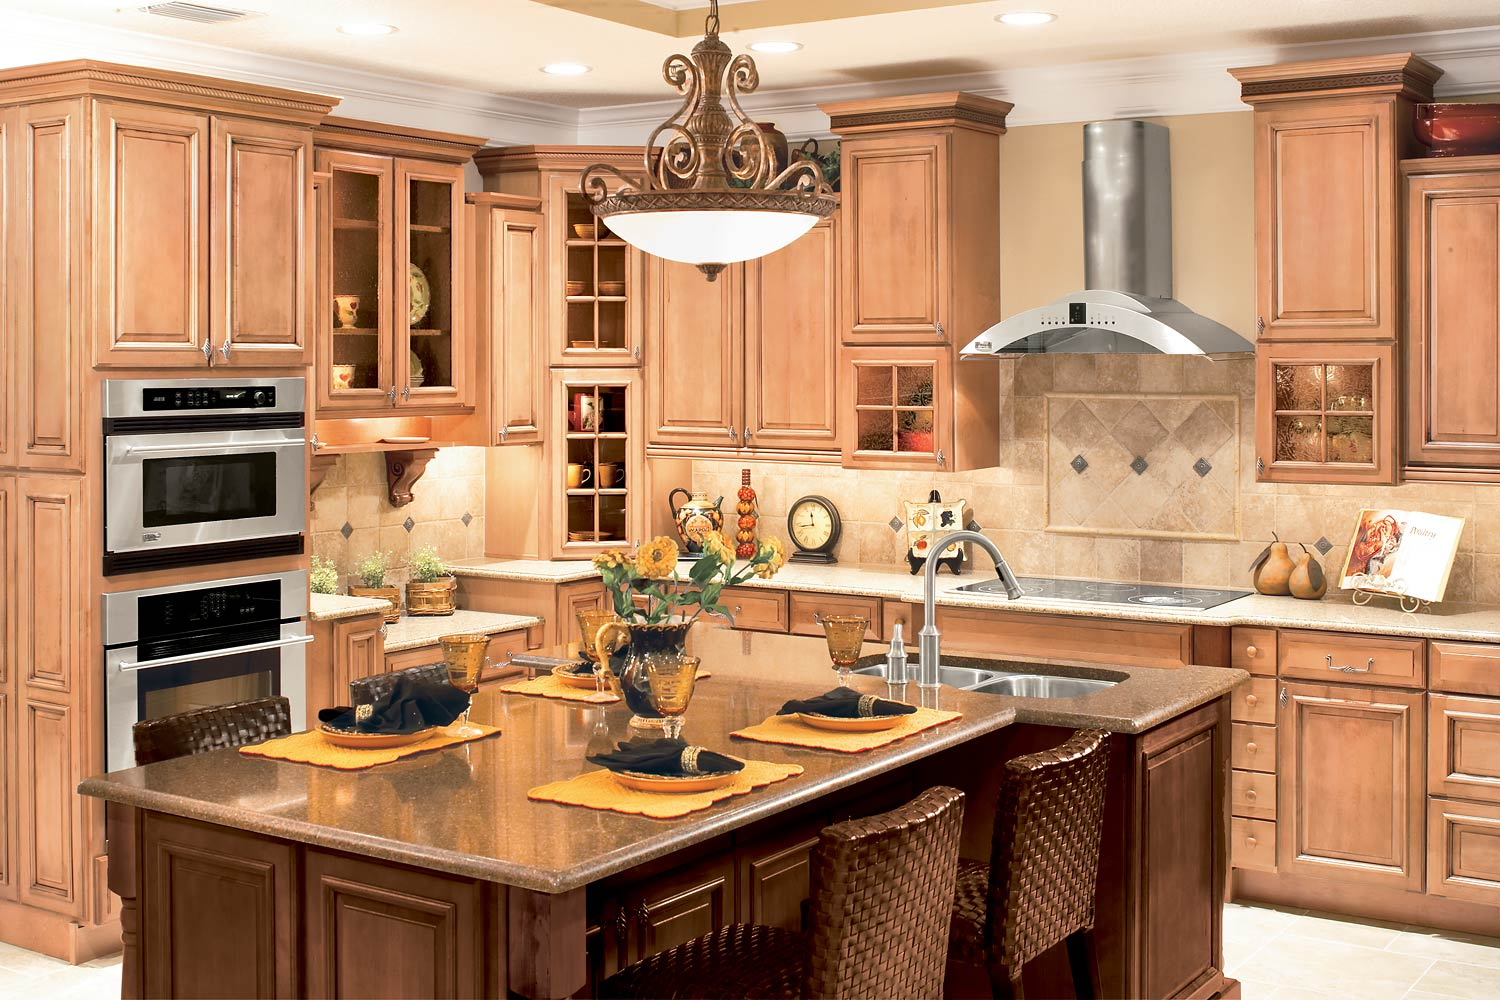 Simple american kitchen design - Fashion American Style Kitchen